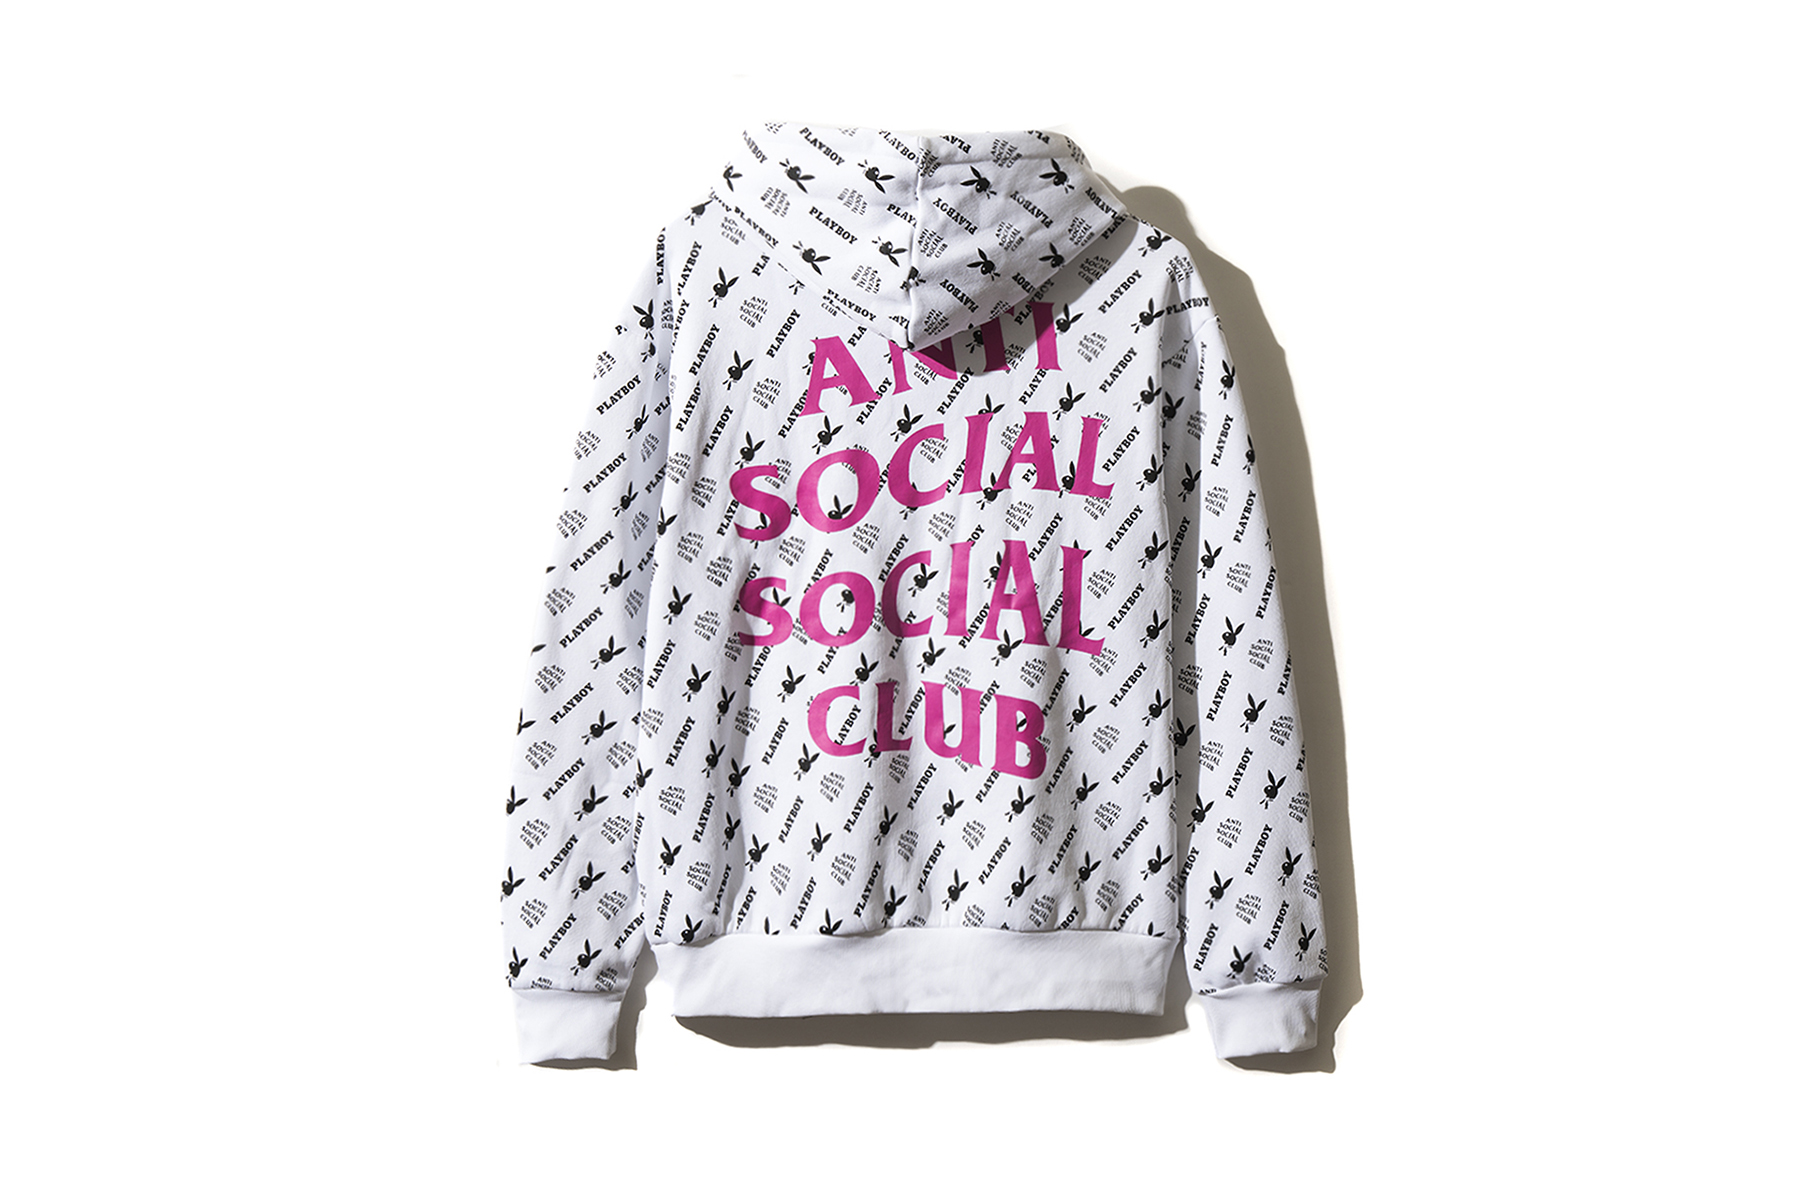 677f2a09e7075 Playboy White Label x Anti Social Social Club